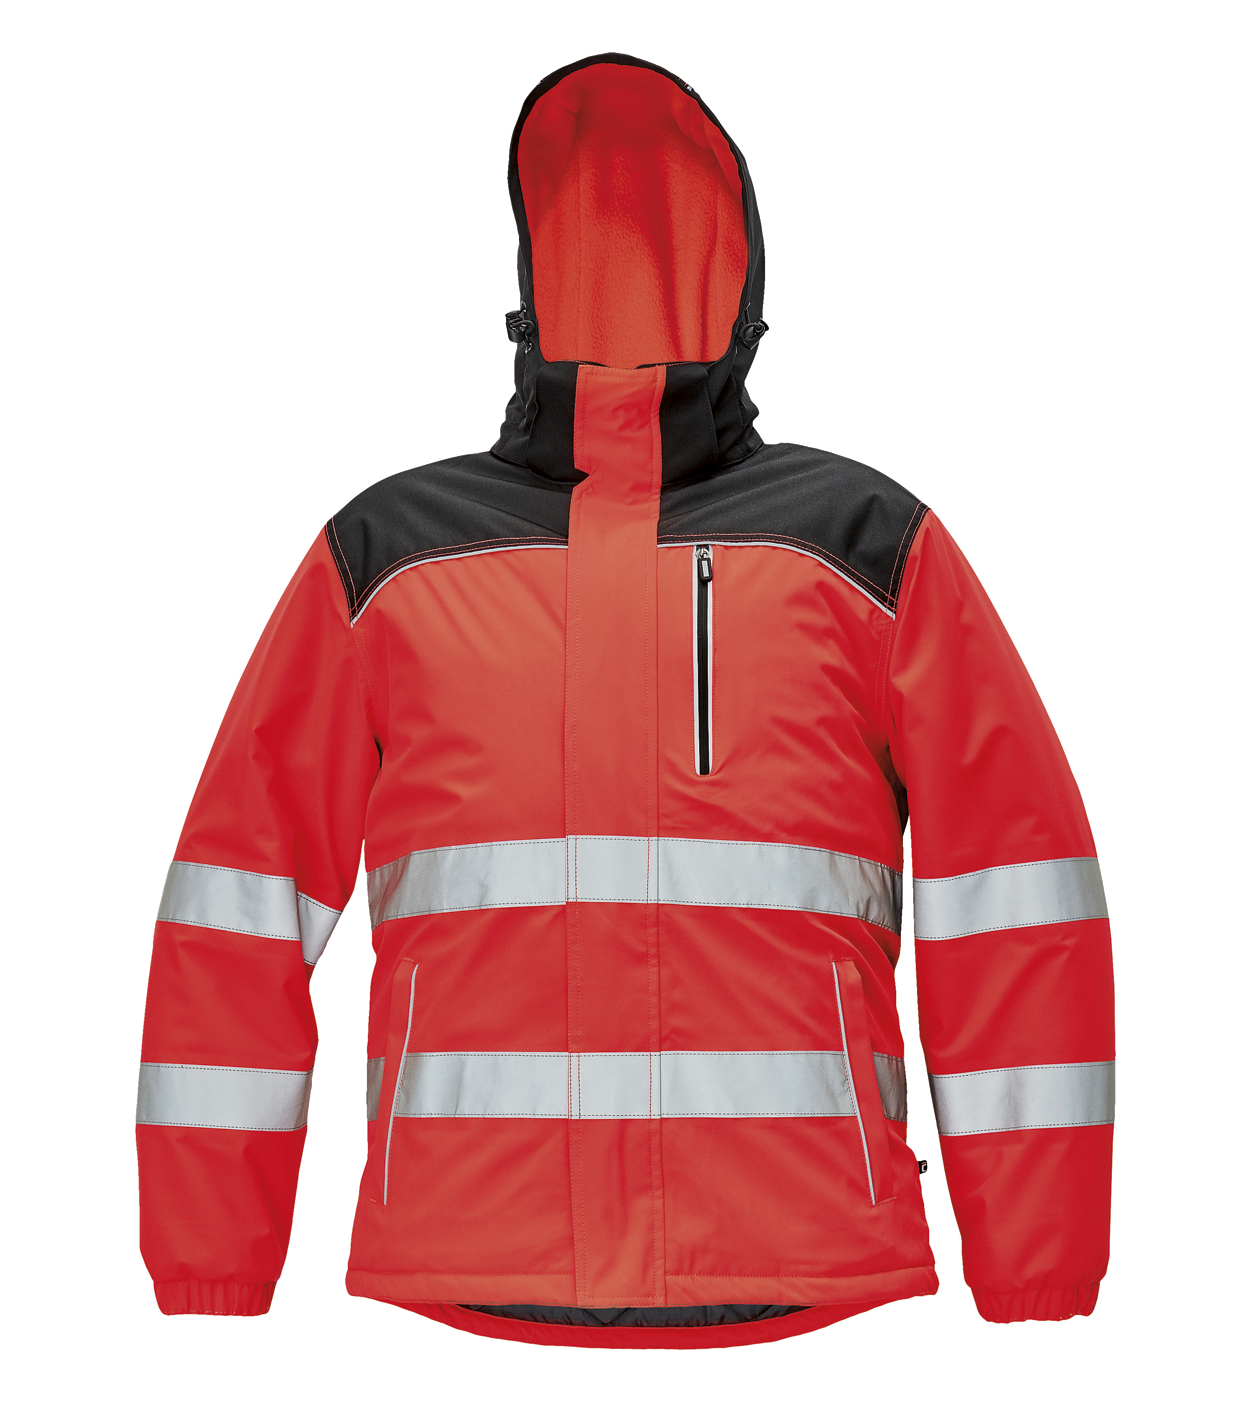 Image of   Jakke Knoxfield Hi-viz vinter